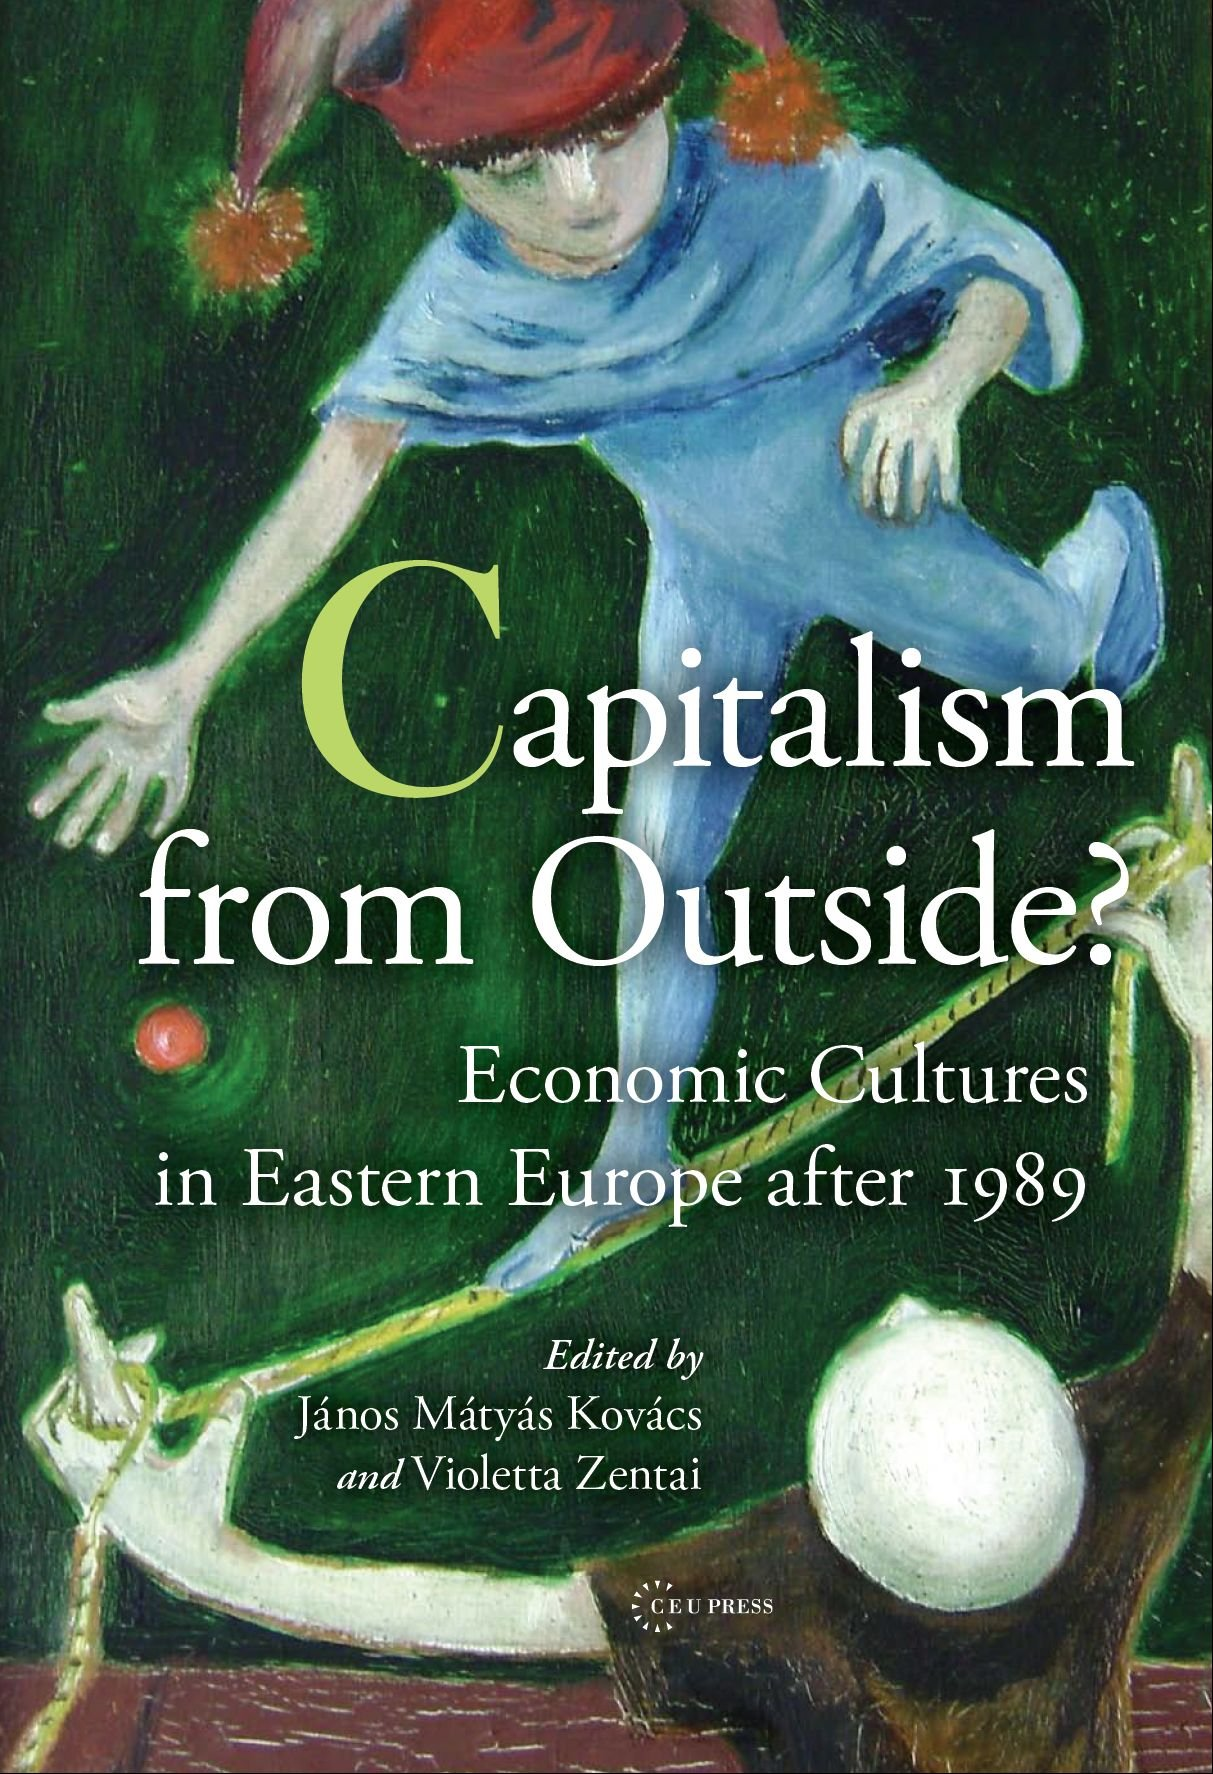 Capitalism From Outside?: Economic Cultures in Eastern Europe after 1989 Hardcover – August 15, 2012